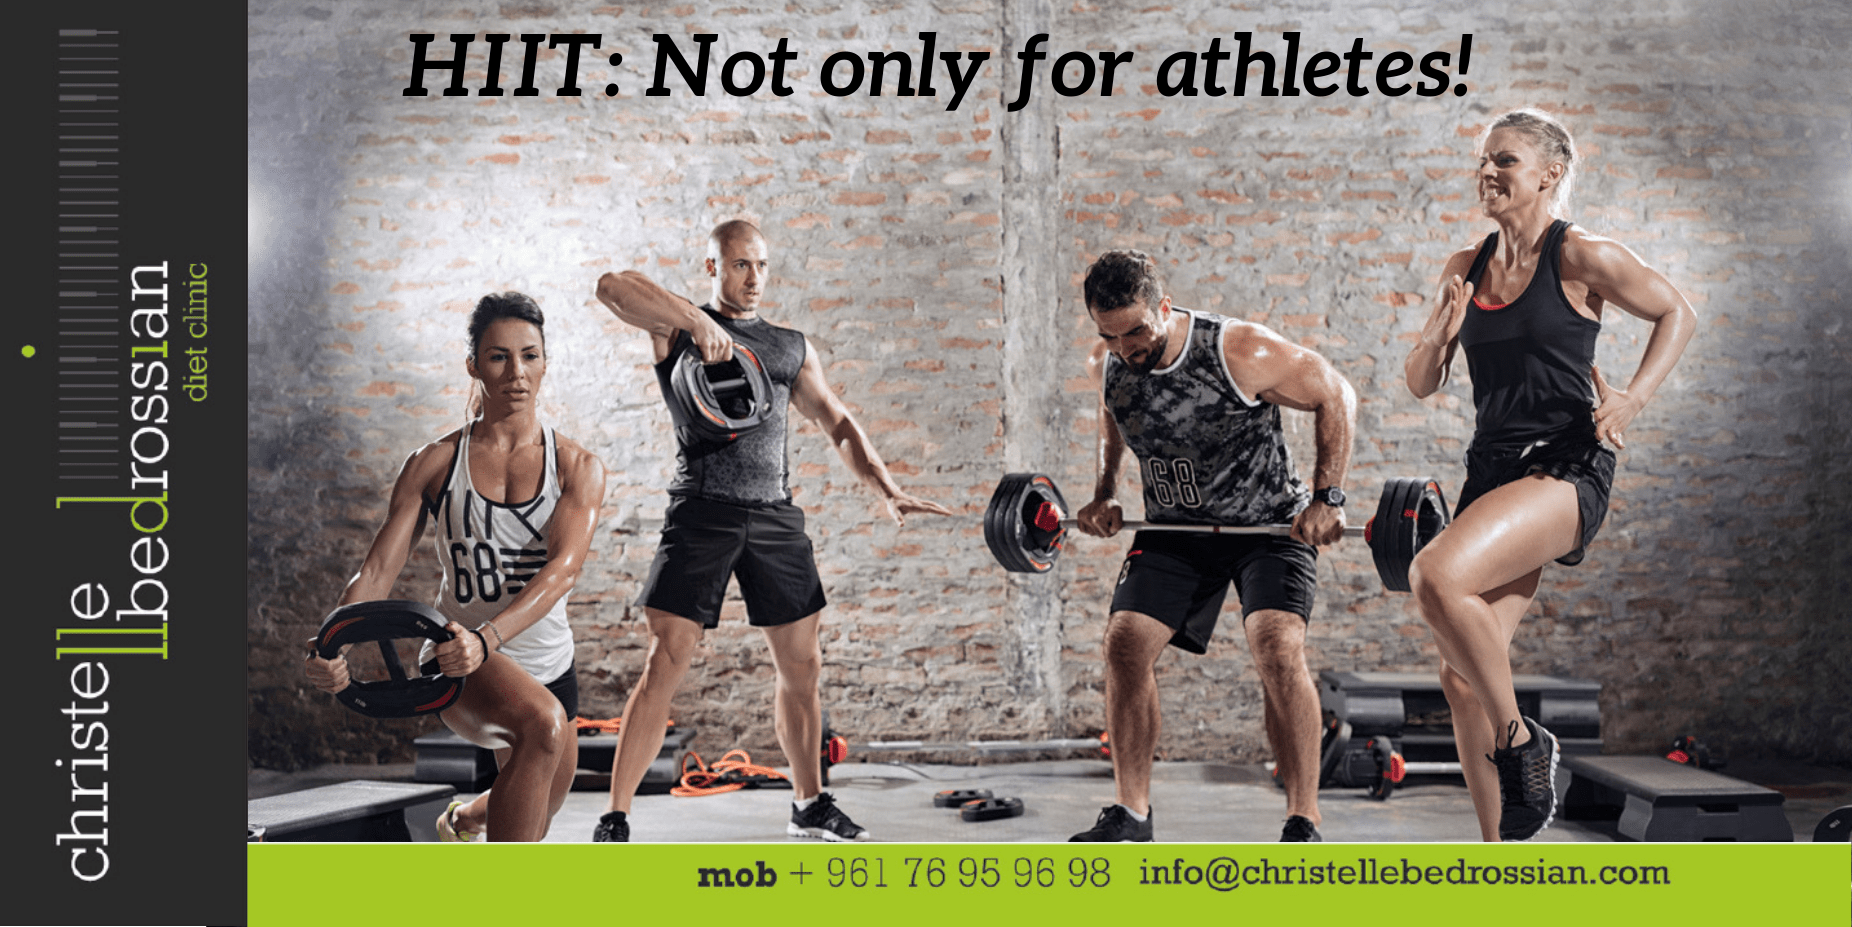 best dietitian lebanon, lebanon, health, training, workout, high intensity, hiit